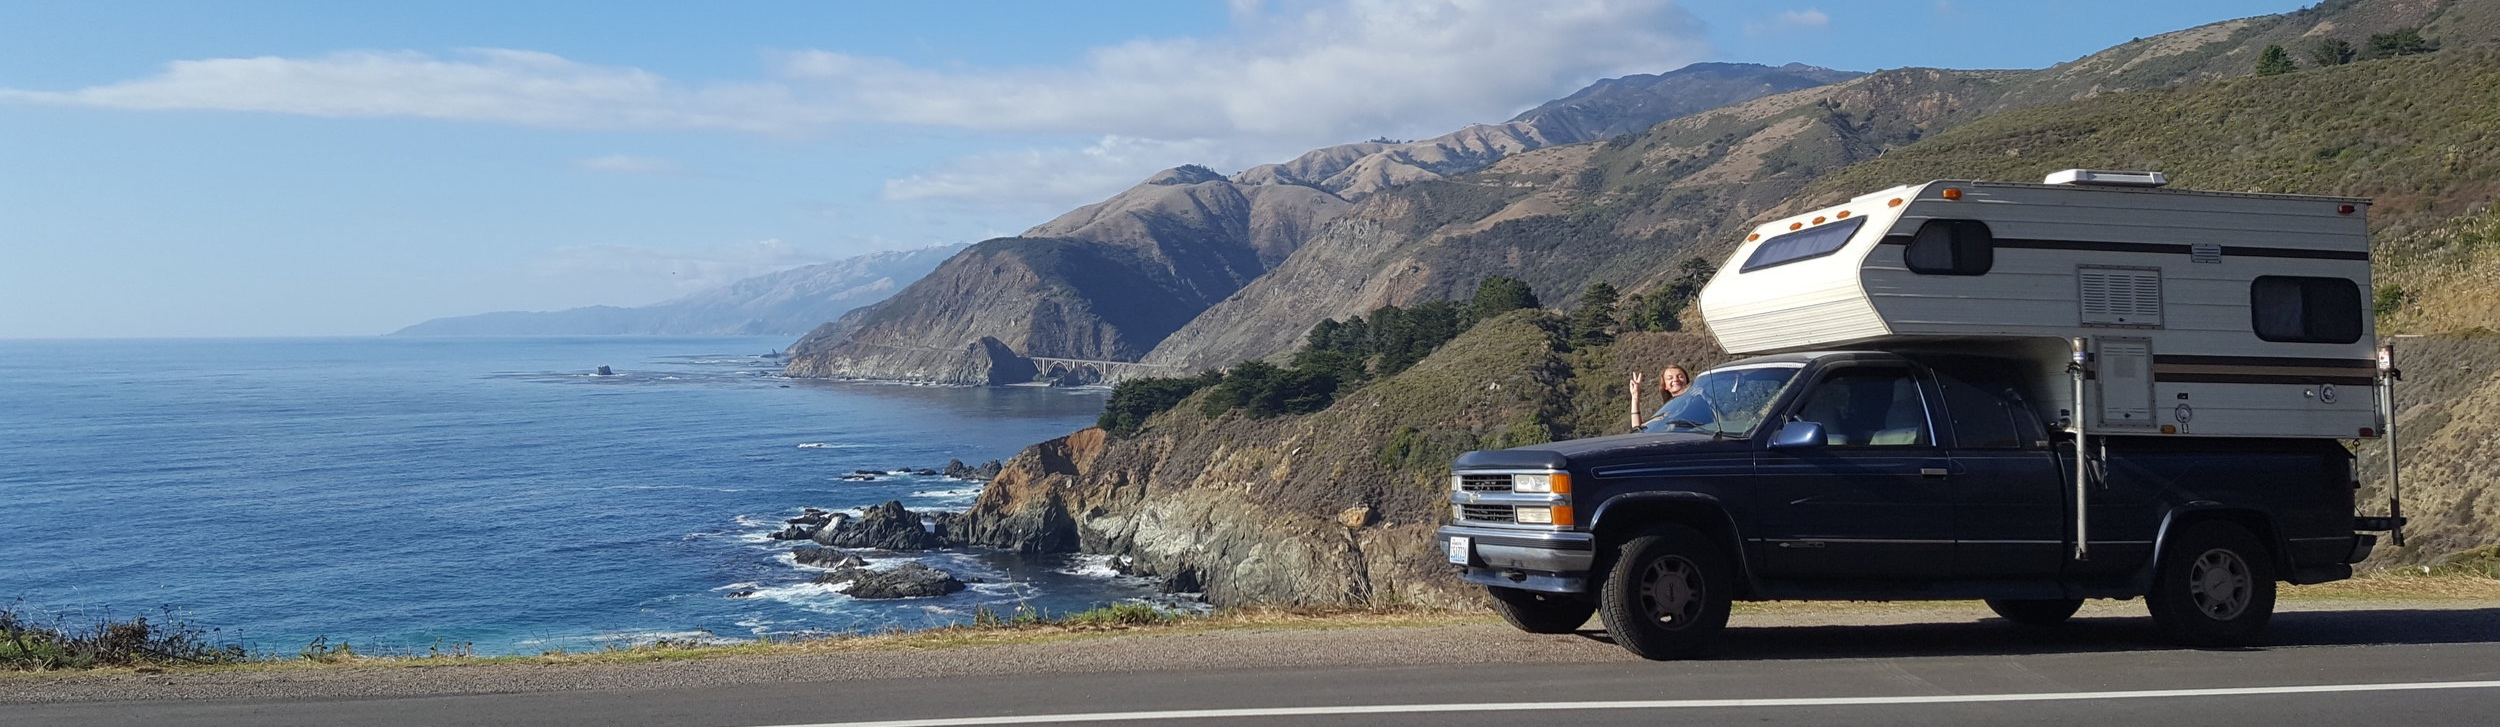 Truck and camper next to the Pacific ocean